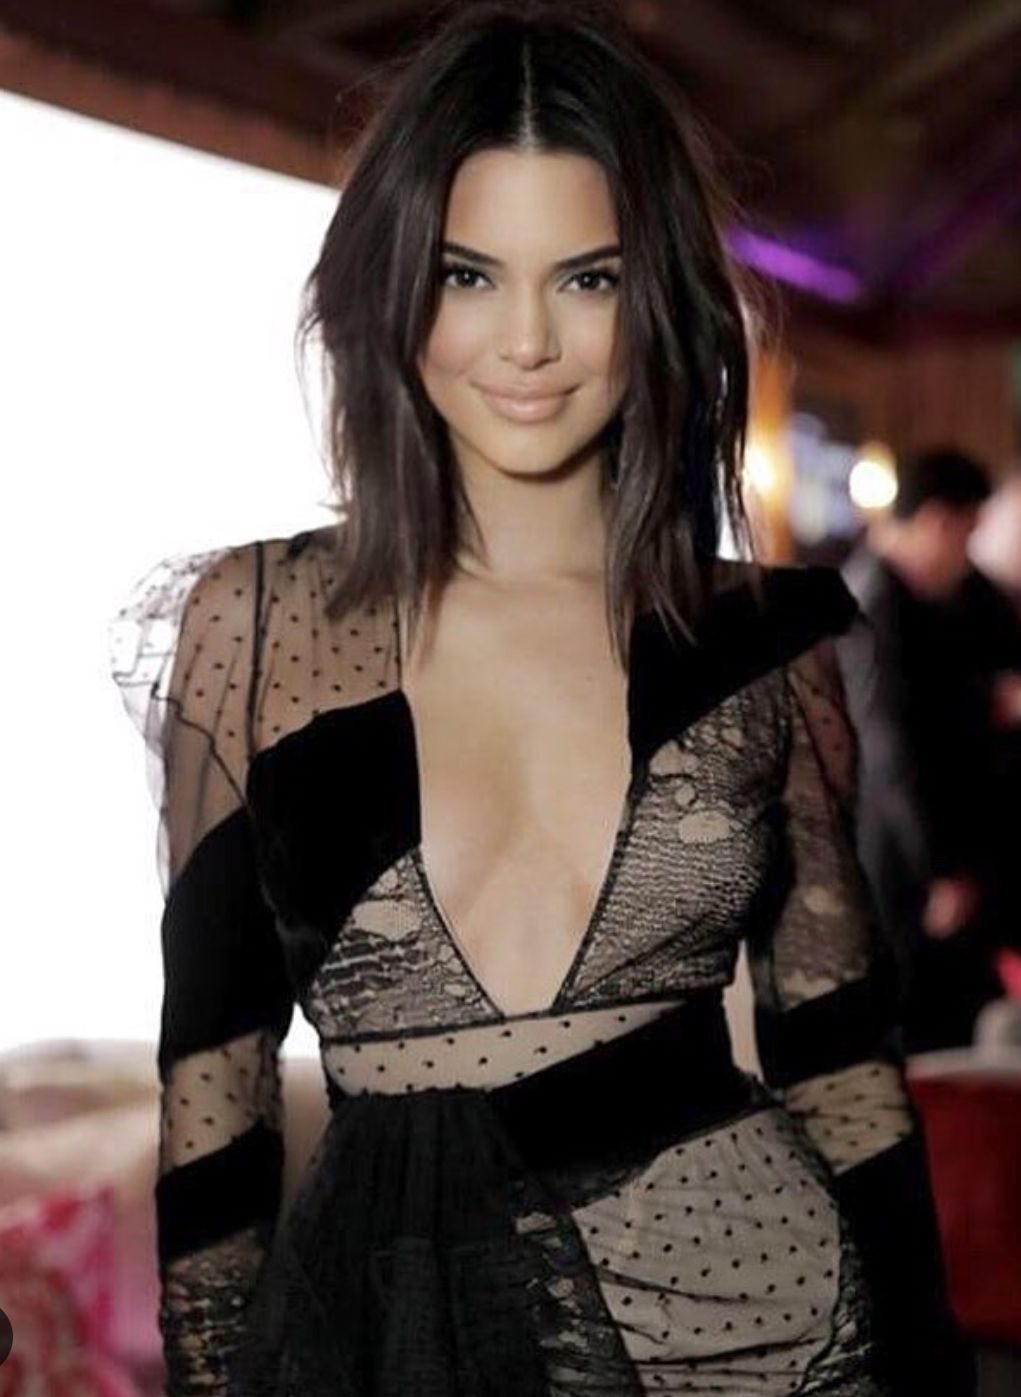 Kendall Jenner. 2018-2019 celebrityes photos leaks! new pictures